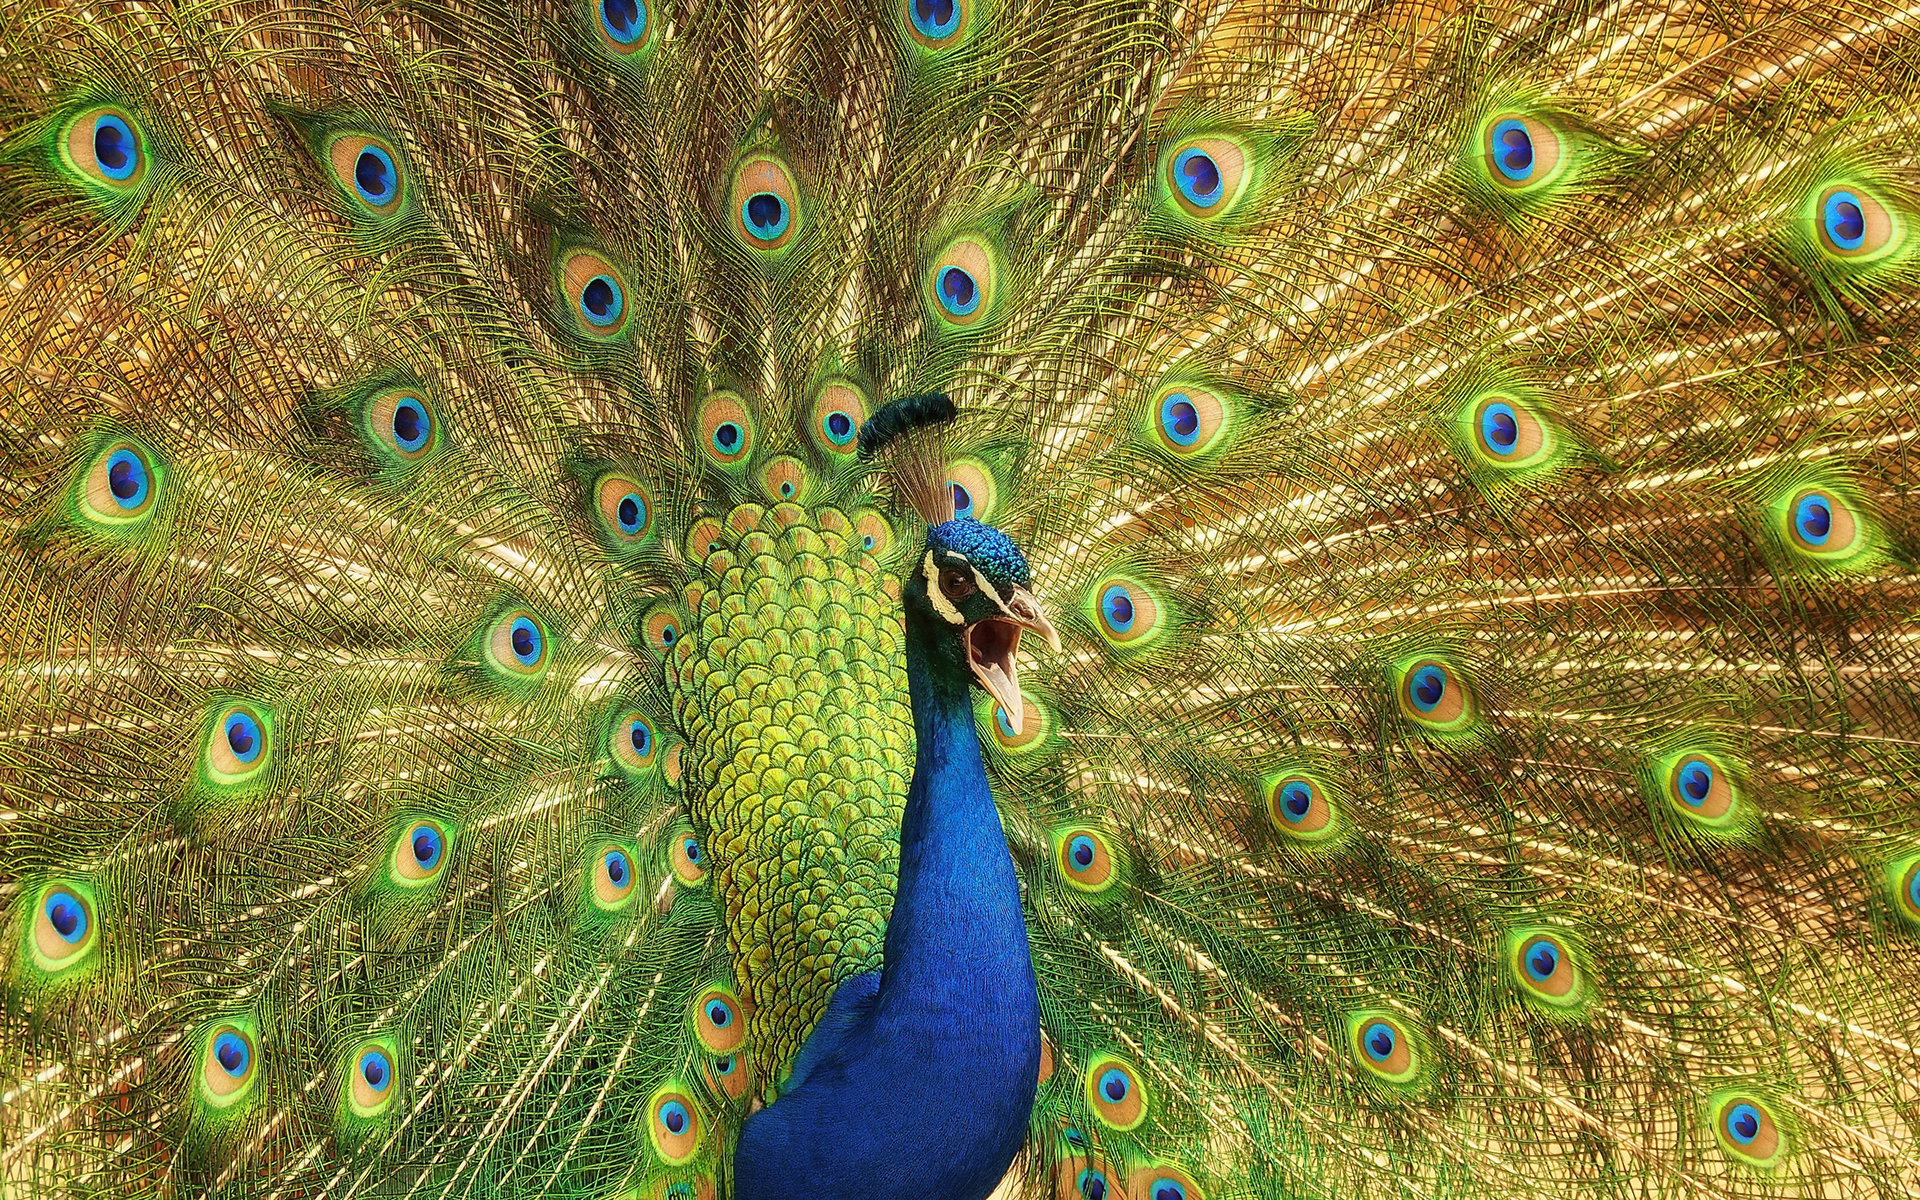 Download hd 1920x1200 Peacock desktop wallpaper ID:151760 for free